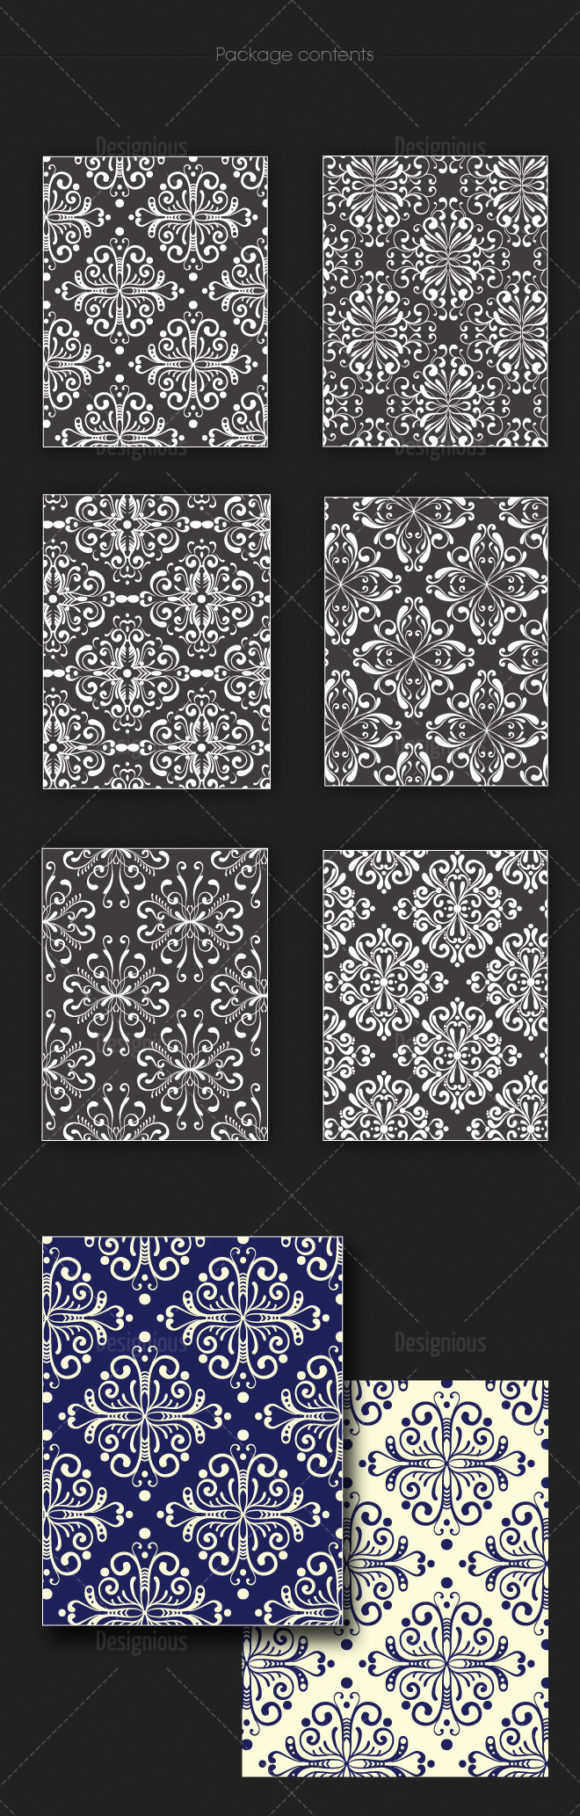 Seamless Patterns Vector Pack 123 products seamless patterns vector pack 123 large 1